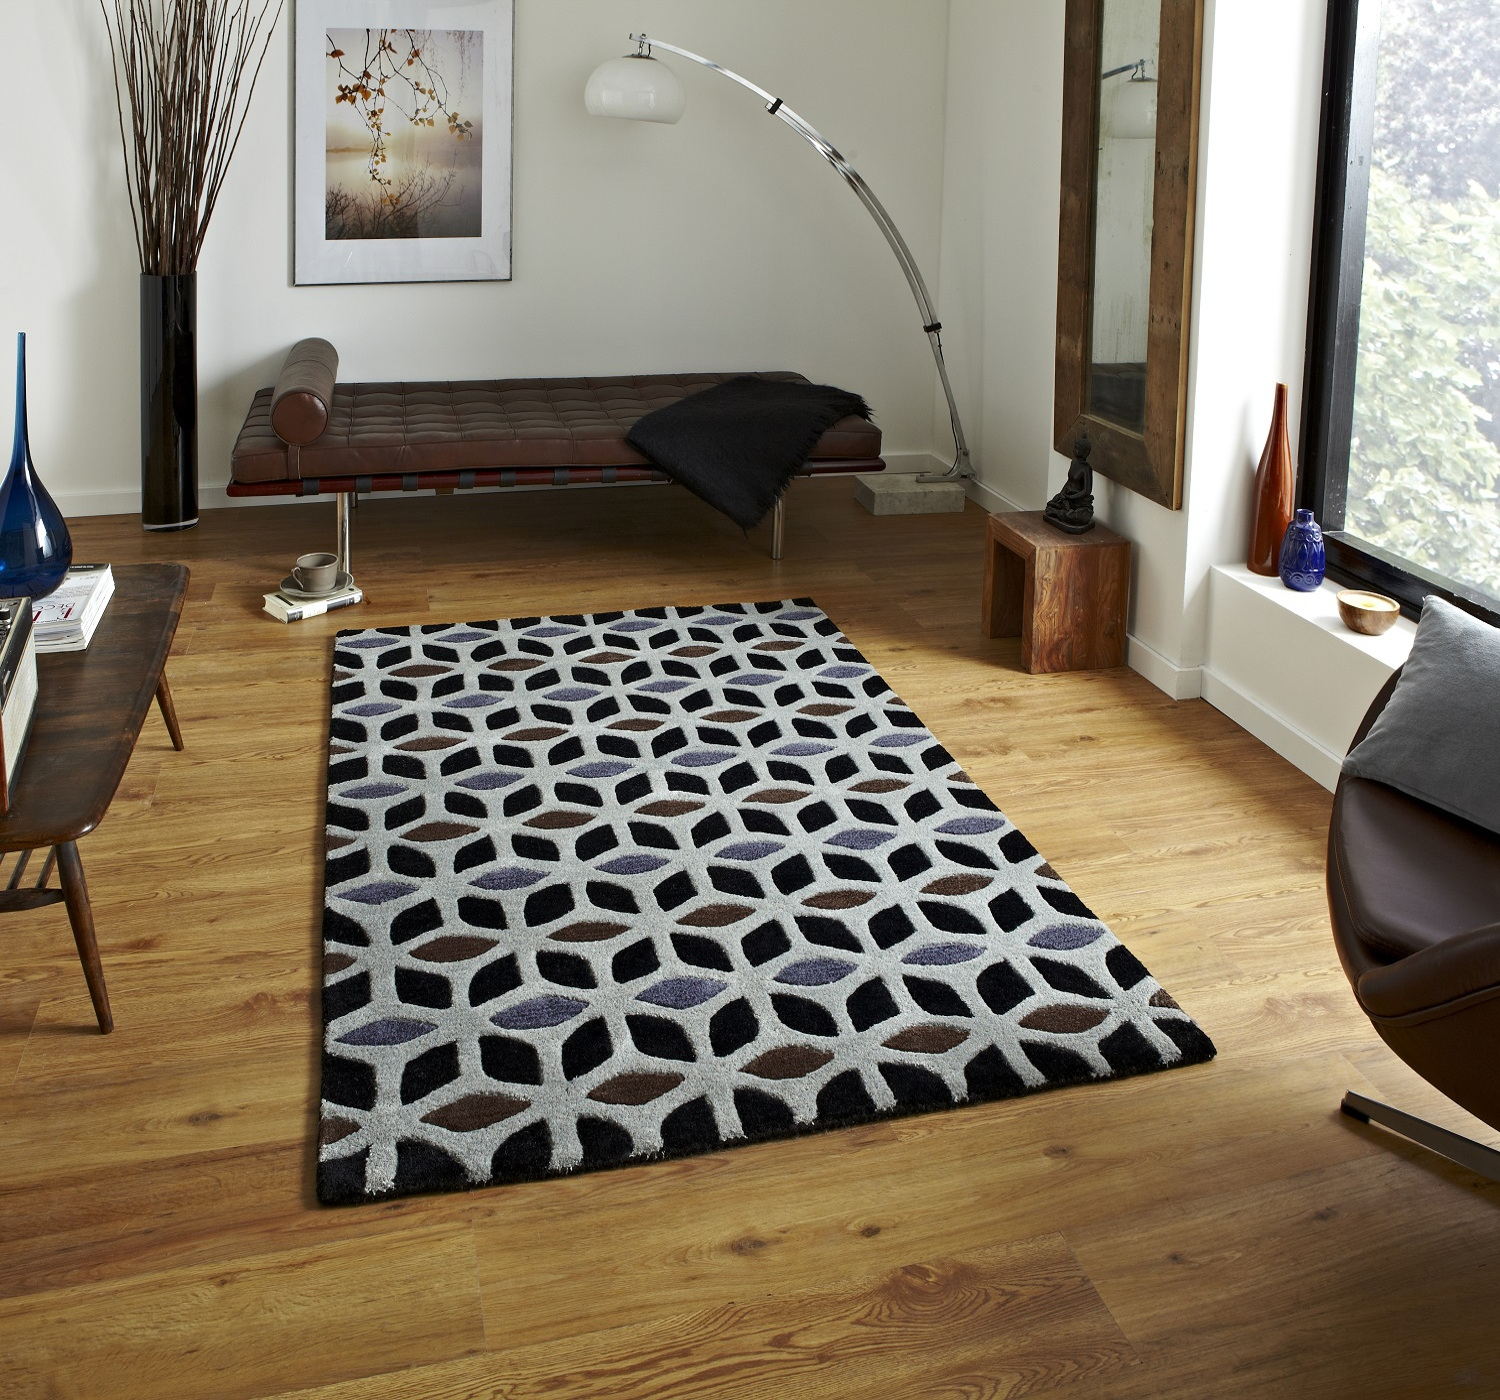 Rugs Geometric Design Home Decors Collection Regarding Large Geometric Rugs (Image 13 of 15)